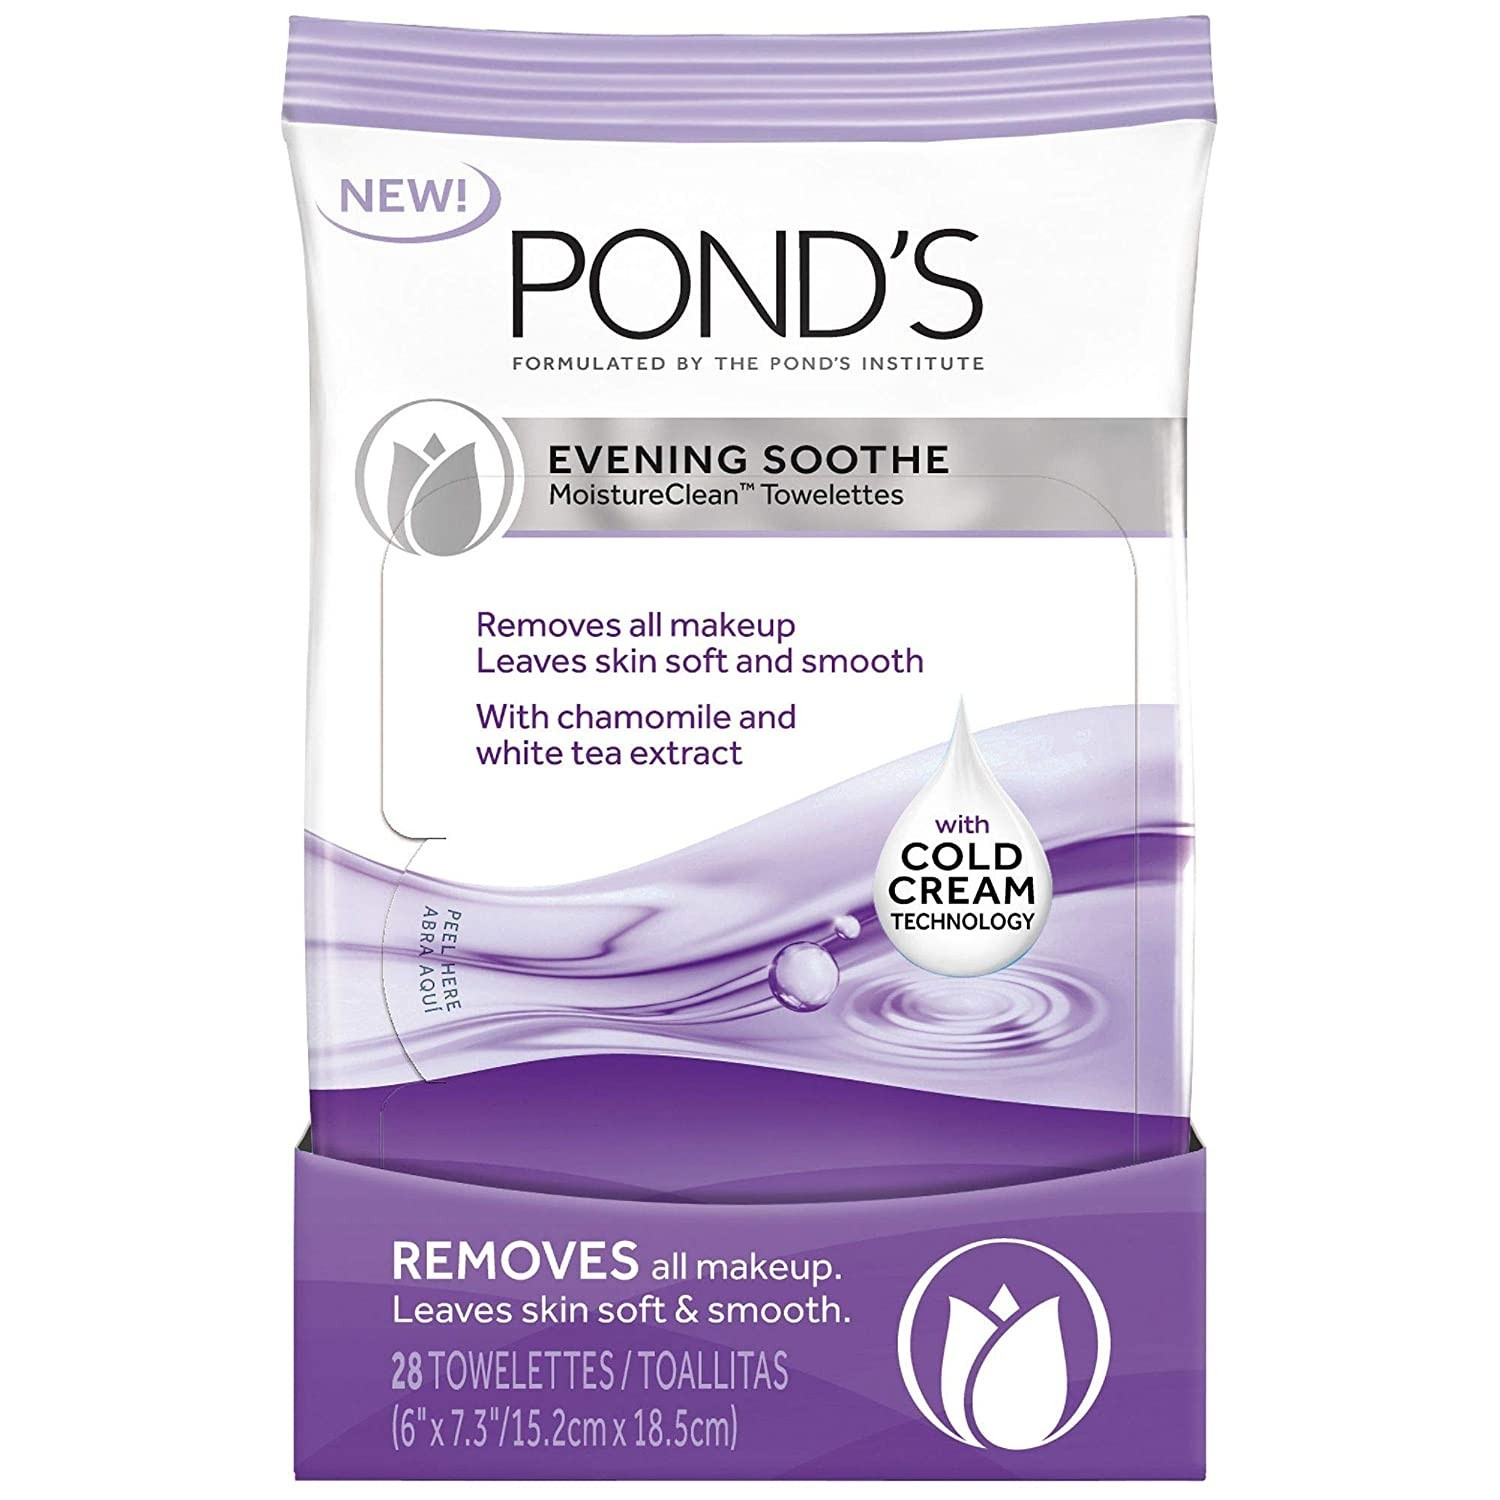 Pond's Makeup Wipes, 11,/220 Cases, Brand New, Ext. Retail $61,092, Newville, PA